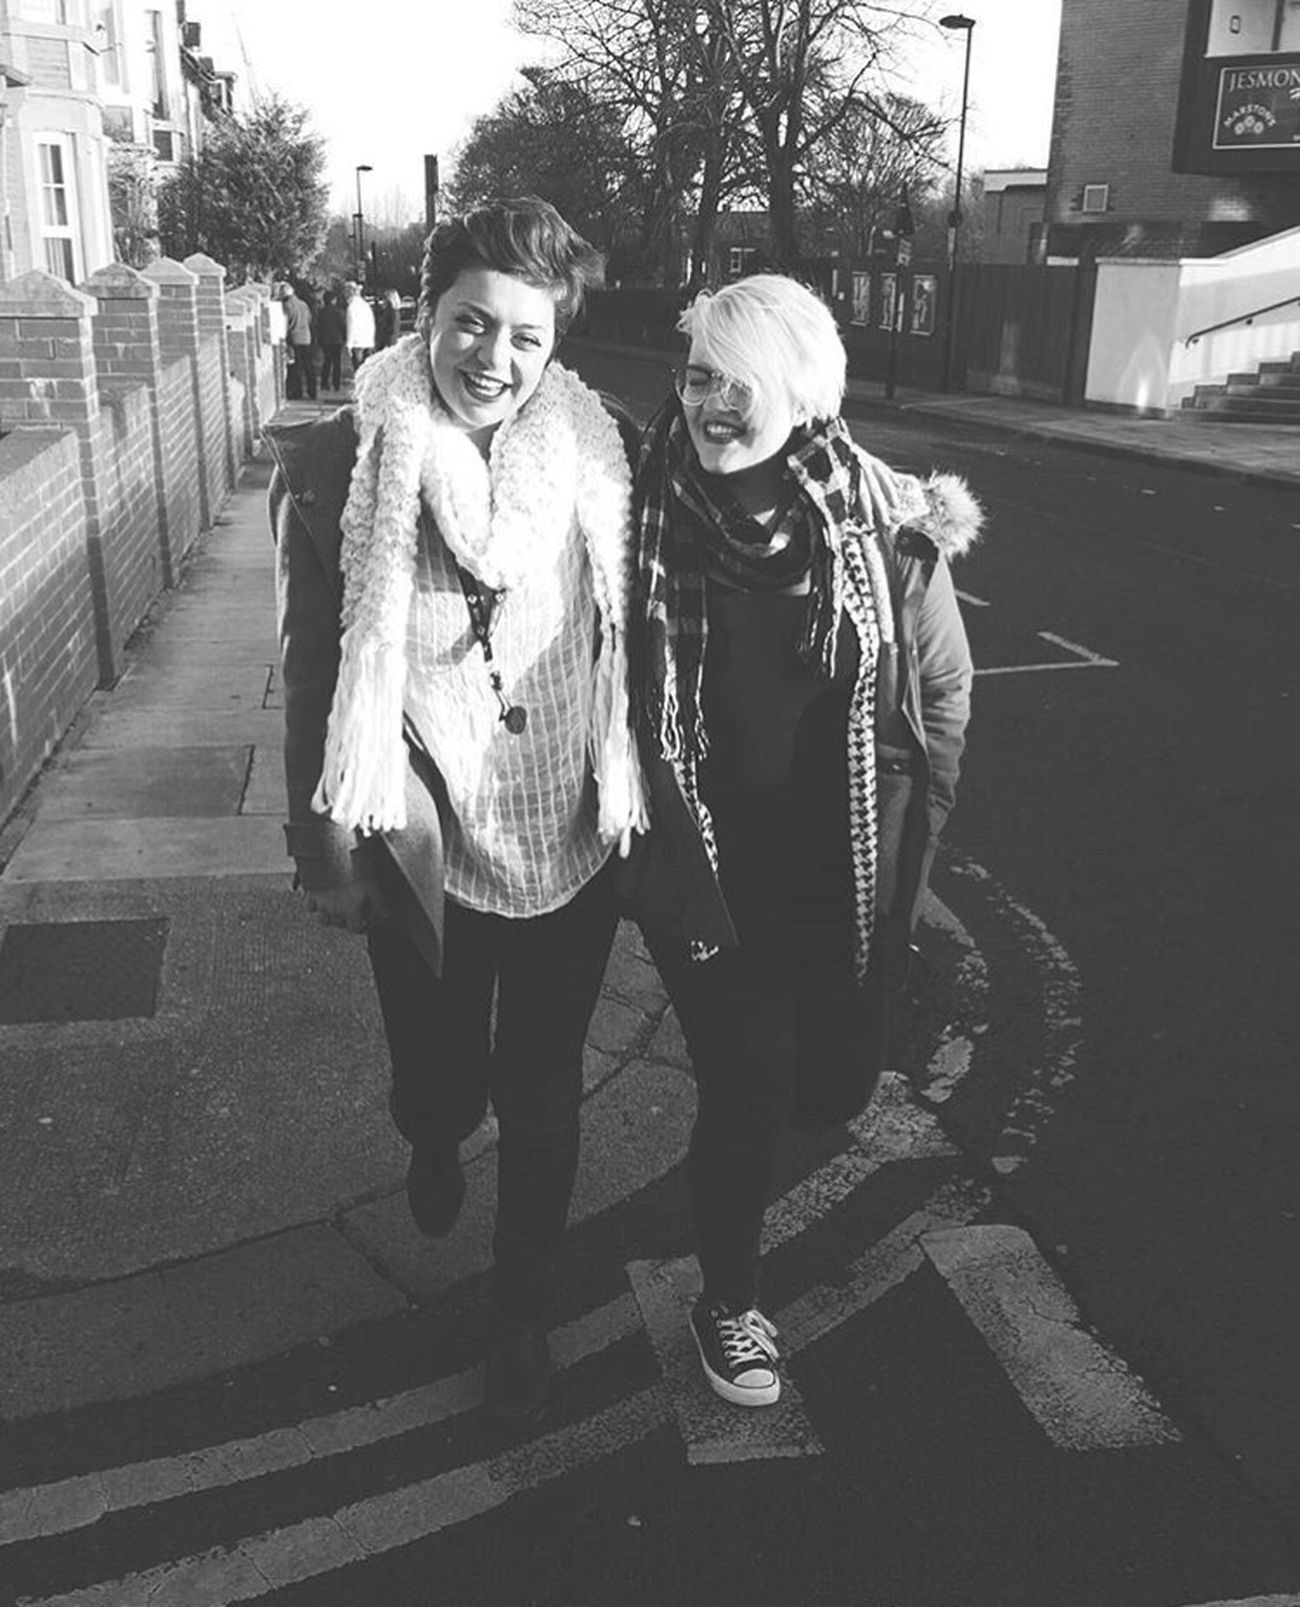 My cousin Mabel and I. Newcastle bound. Street Togetherness City Two People Walking Women Friendship Outdoors Full Length Lifestyles Portrait Real People Bonding Day People Warm Clothing Winter Cold Temperature England North Beautiful Family Cousins ❤ Love Girls First Eyeem Photo